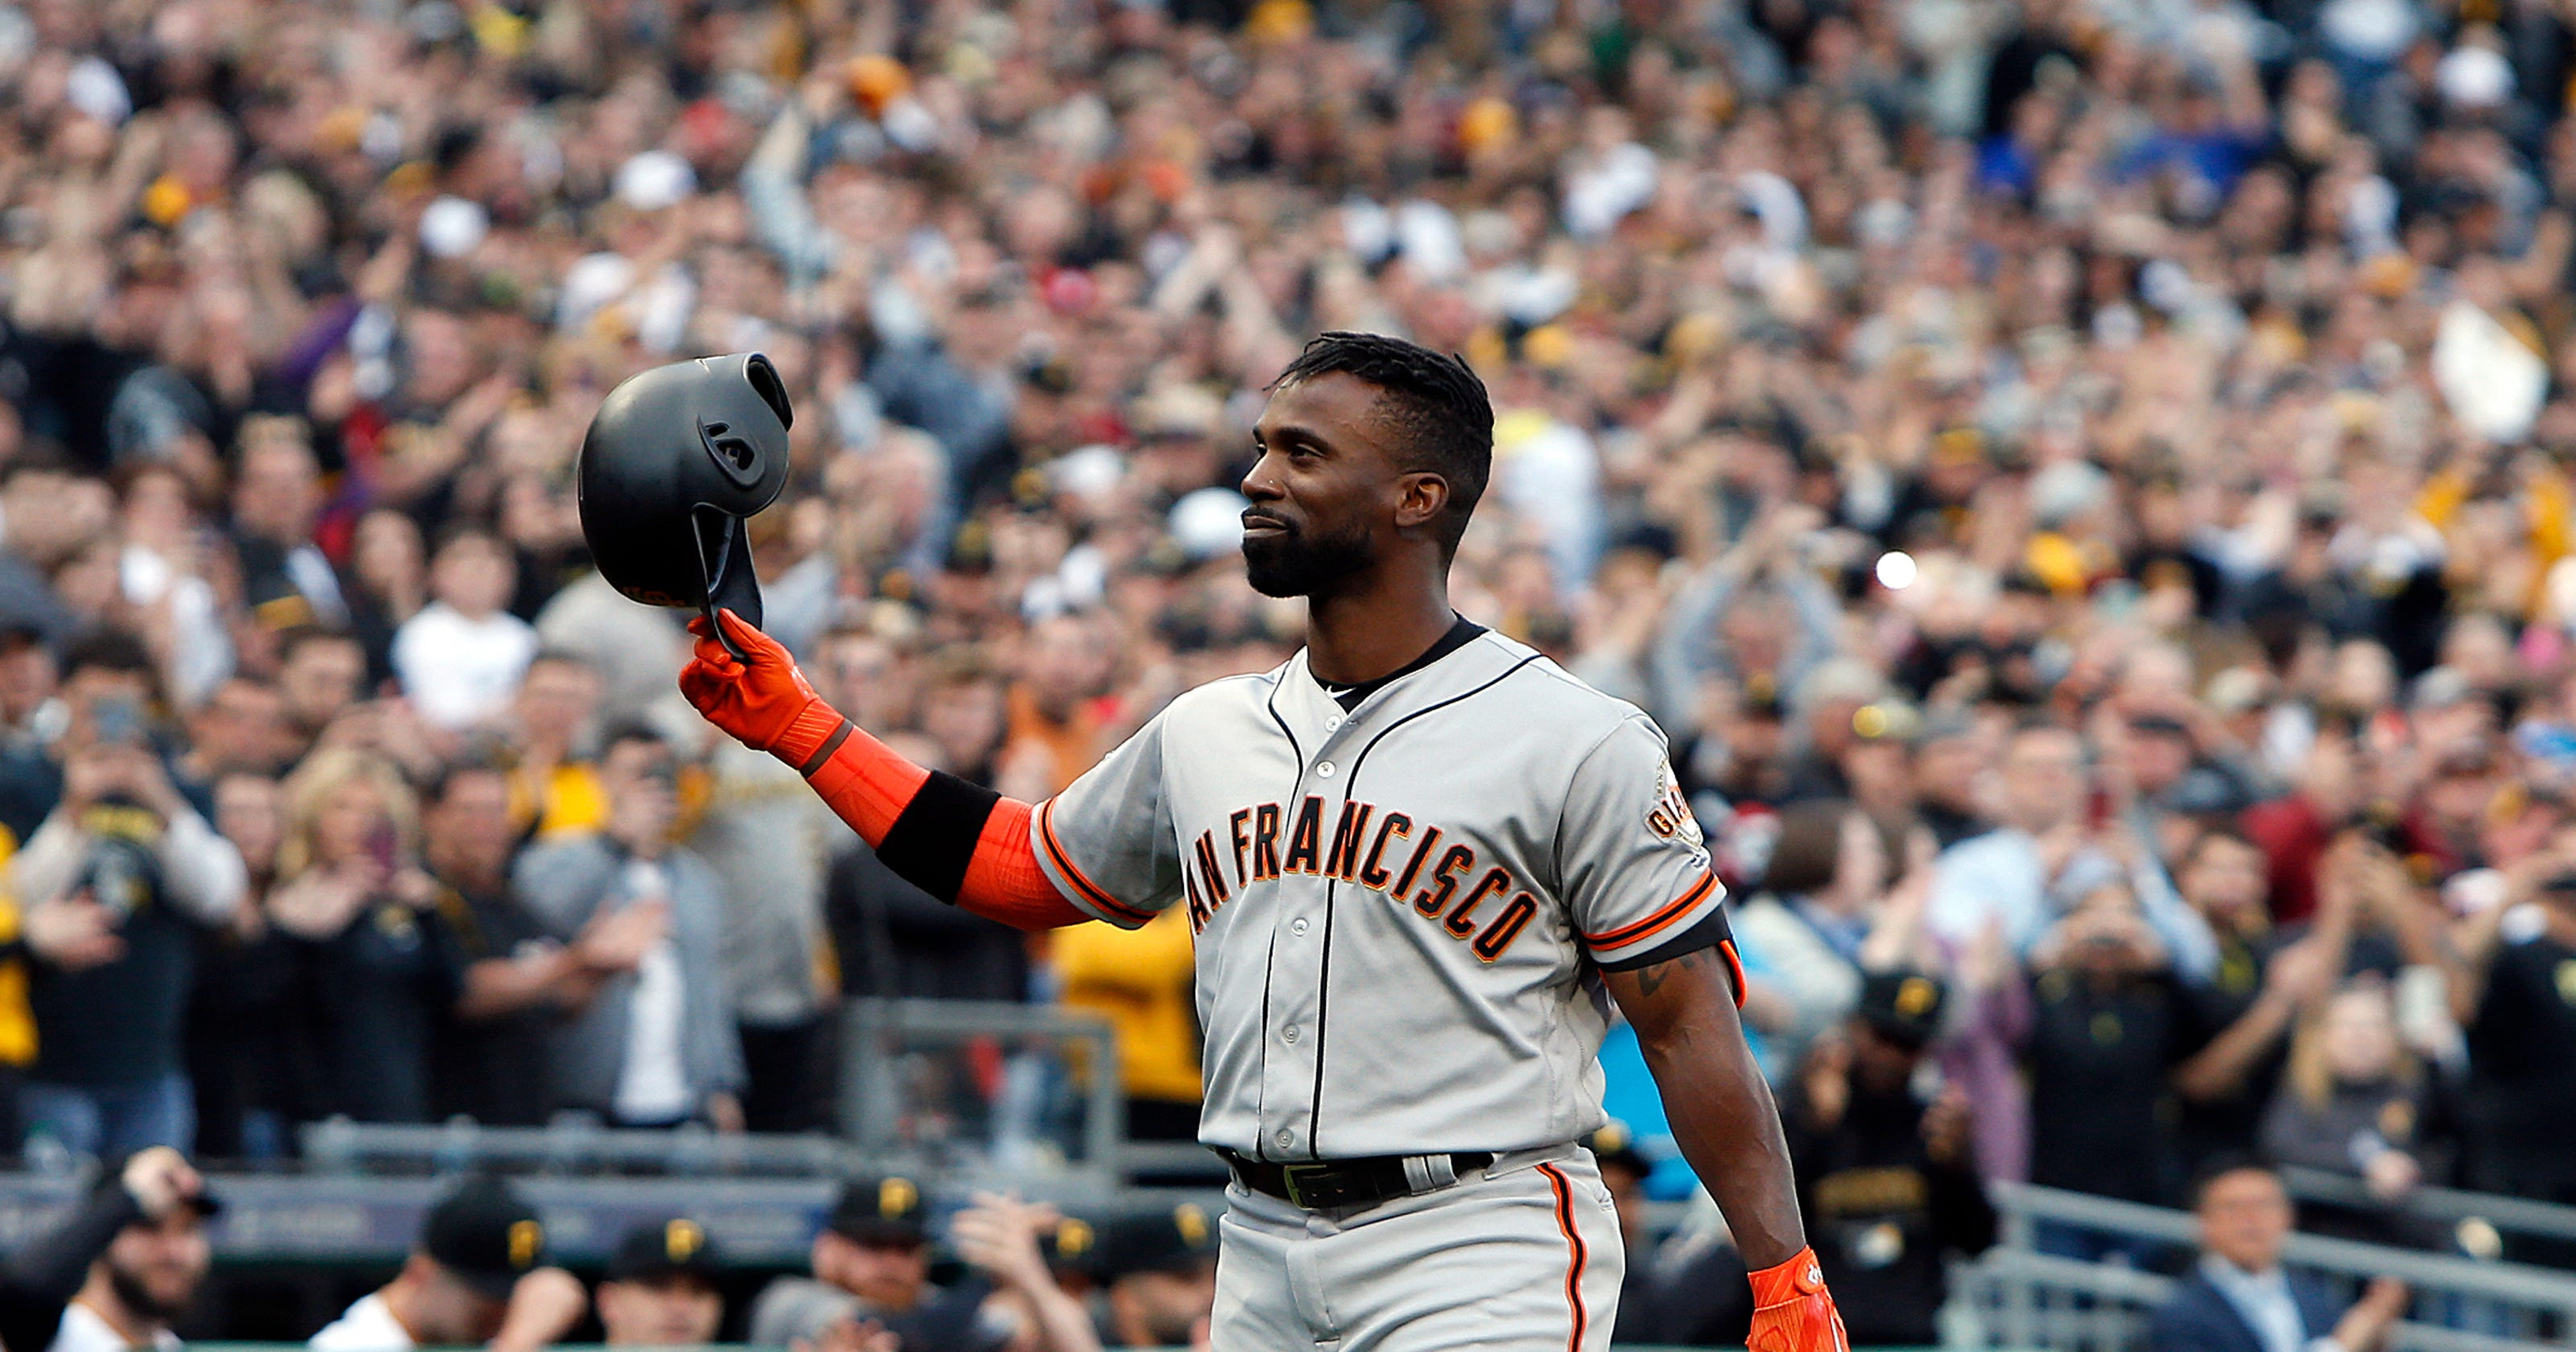 Andrew McCutchen traded to New York Yankees to bolster outfield 7d7d8925845